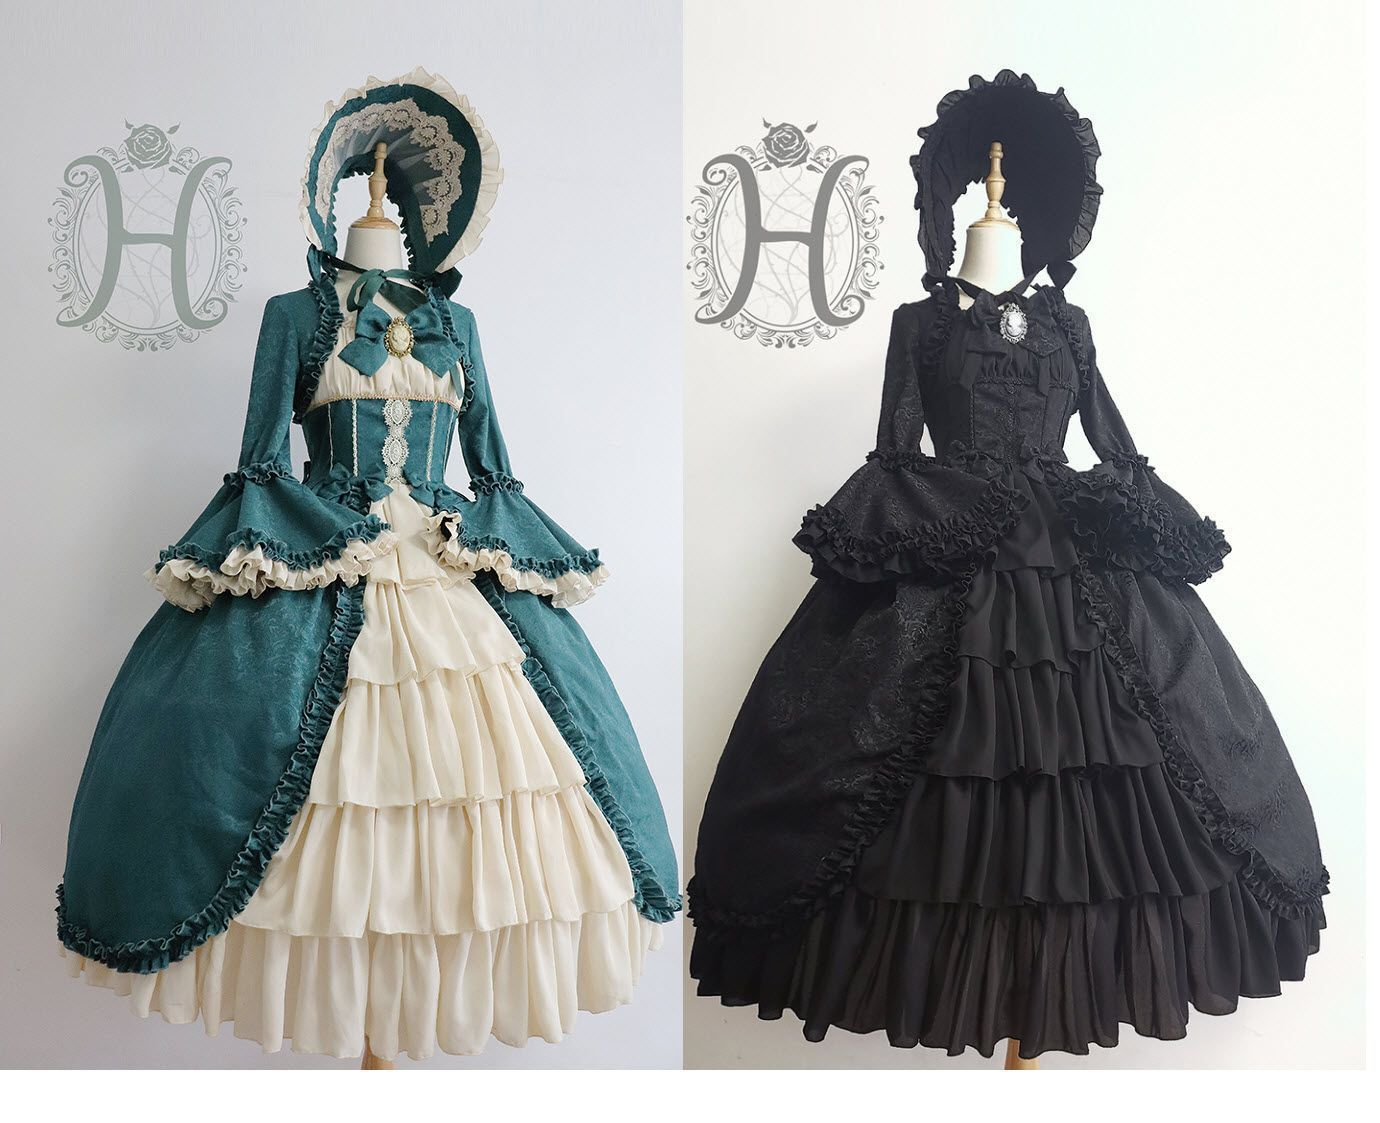 UPDATE: 【-Antique Victorian Doll-】 OP Dresses and Accessories Are Restocked! #victoriandolls #victoriandolls UPDATE: 【-Antique Victorian Doll-】 OP Dresses and Accessories Are Restocked! #victoriandolls #dollvictoriandressstyles UPDATE: 【-Antique Victorian Doll-】 OP Dresses and Accessories Are Restocked! #victoriandolls #victoriandolls UPDATE: 【-Antique Victorian Doll-】 OP Dresses and Accessories Are Restocked! #victoriandolls #dollvictoriandressstyles